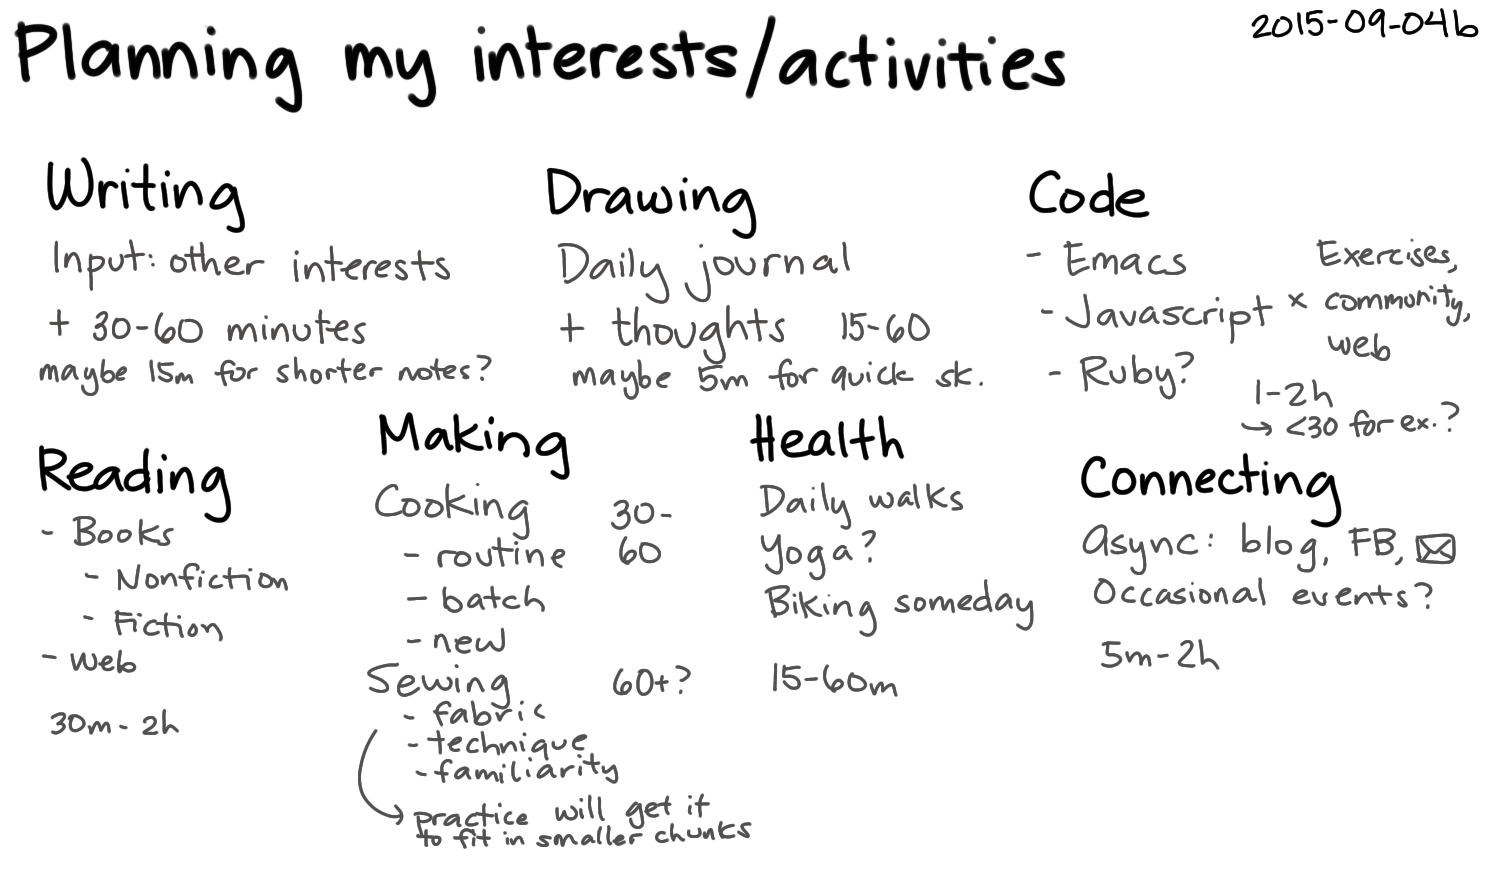 2015-09-04b Planning my interests and activities -- index card #planning #hobbies.png